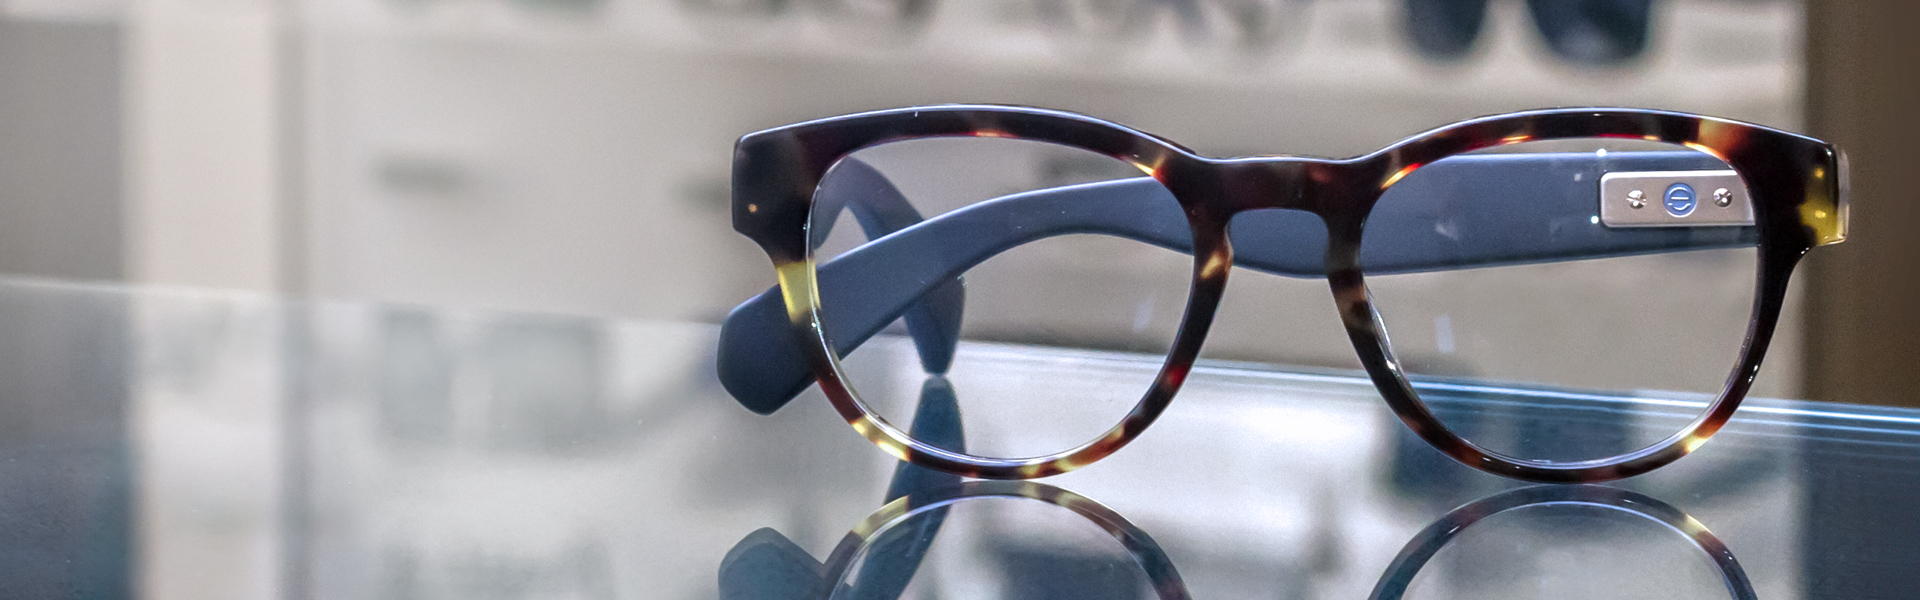 Level Smart Glasses - Nikola Frames